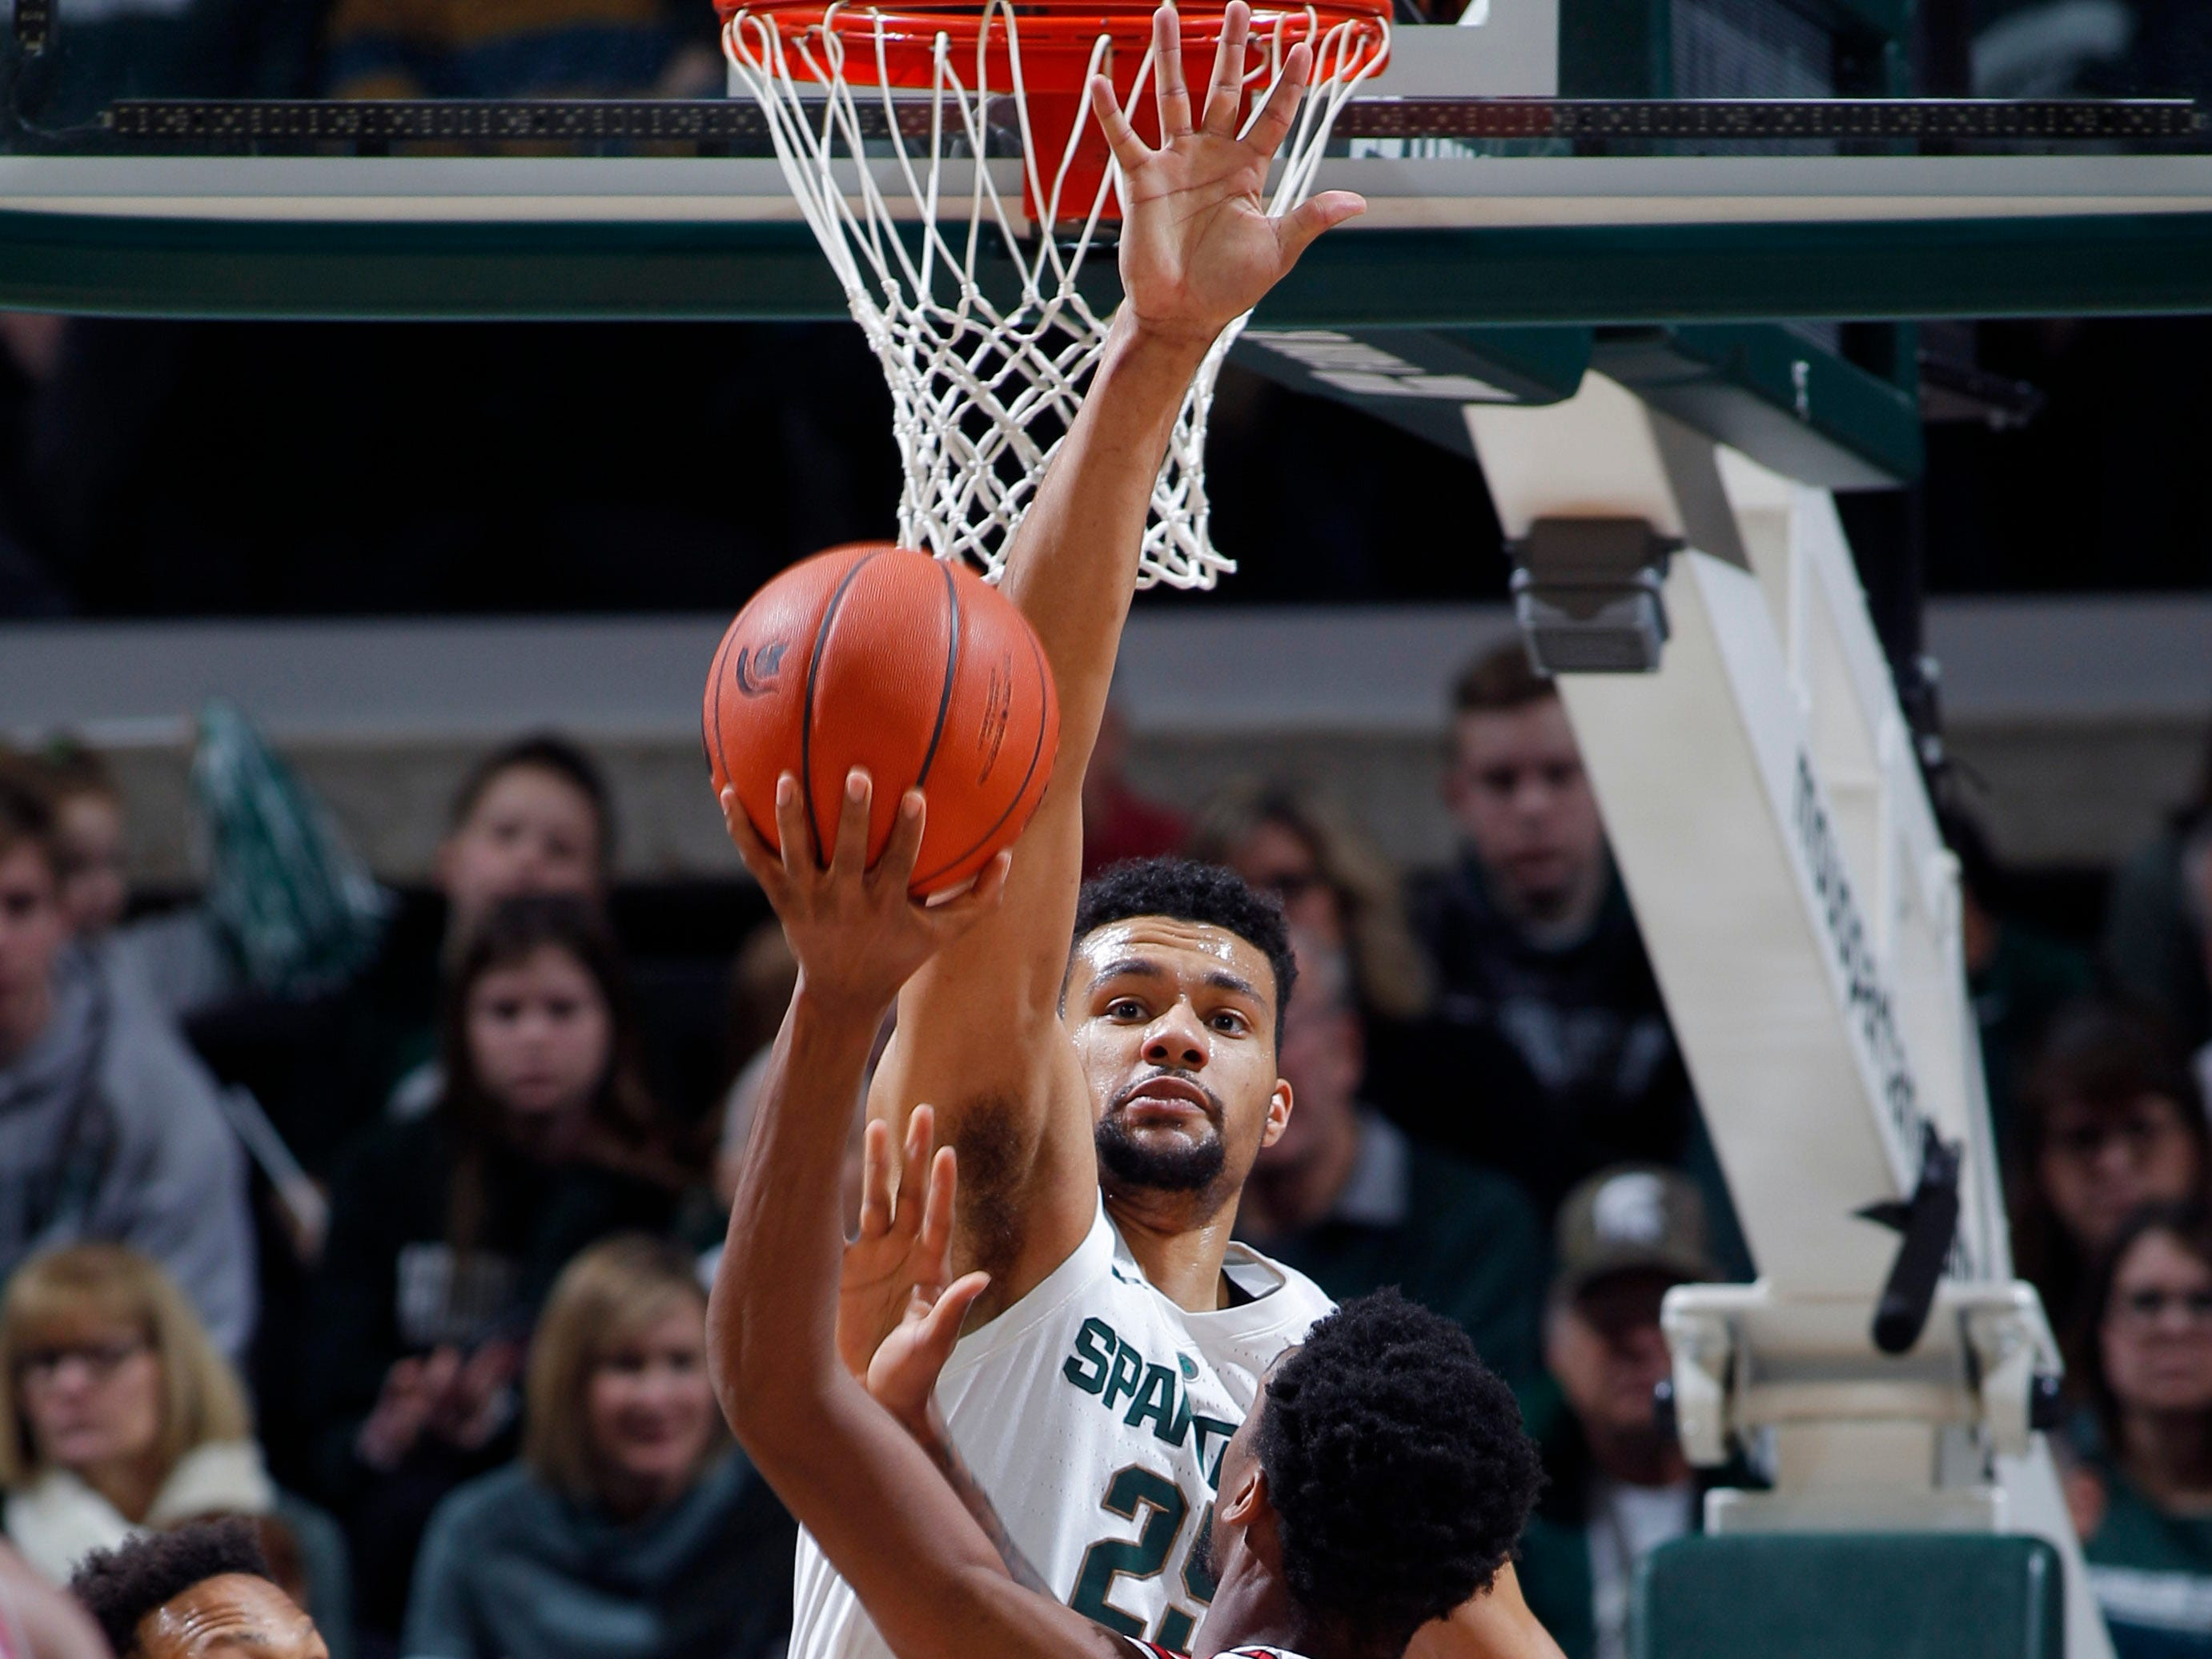 Michigan State's Kenny Goins blocks a shot by Northern Illinois' Levi Bradley as Michigan State's Xavier Tillman (23) and Foster Loyer (3) watch, Saturday, Dec. 29, 2018, in East Lansing, Mich.